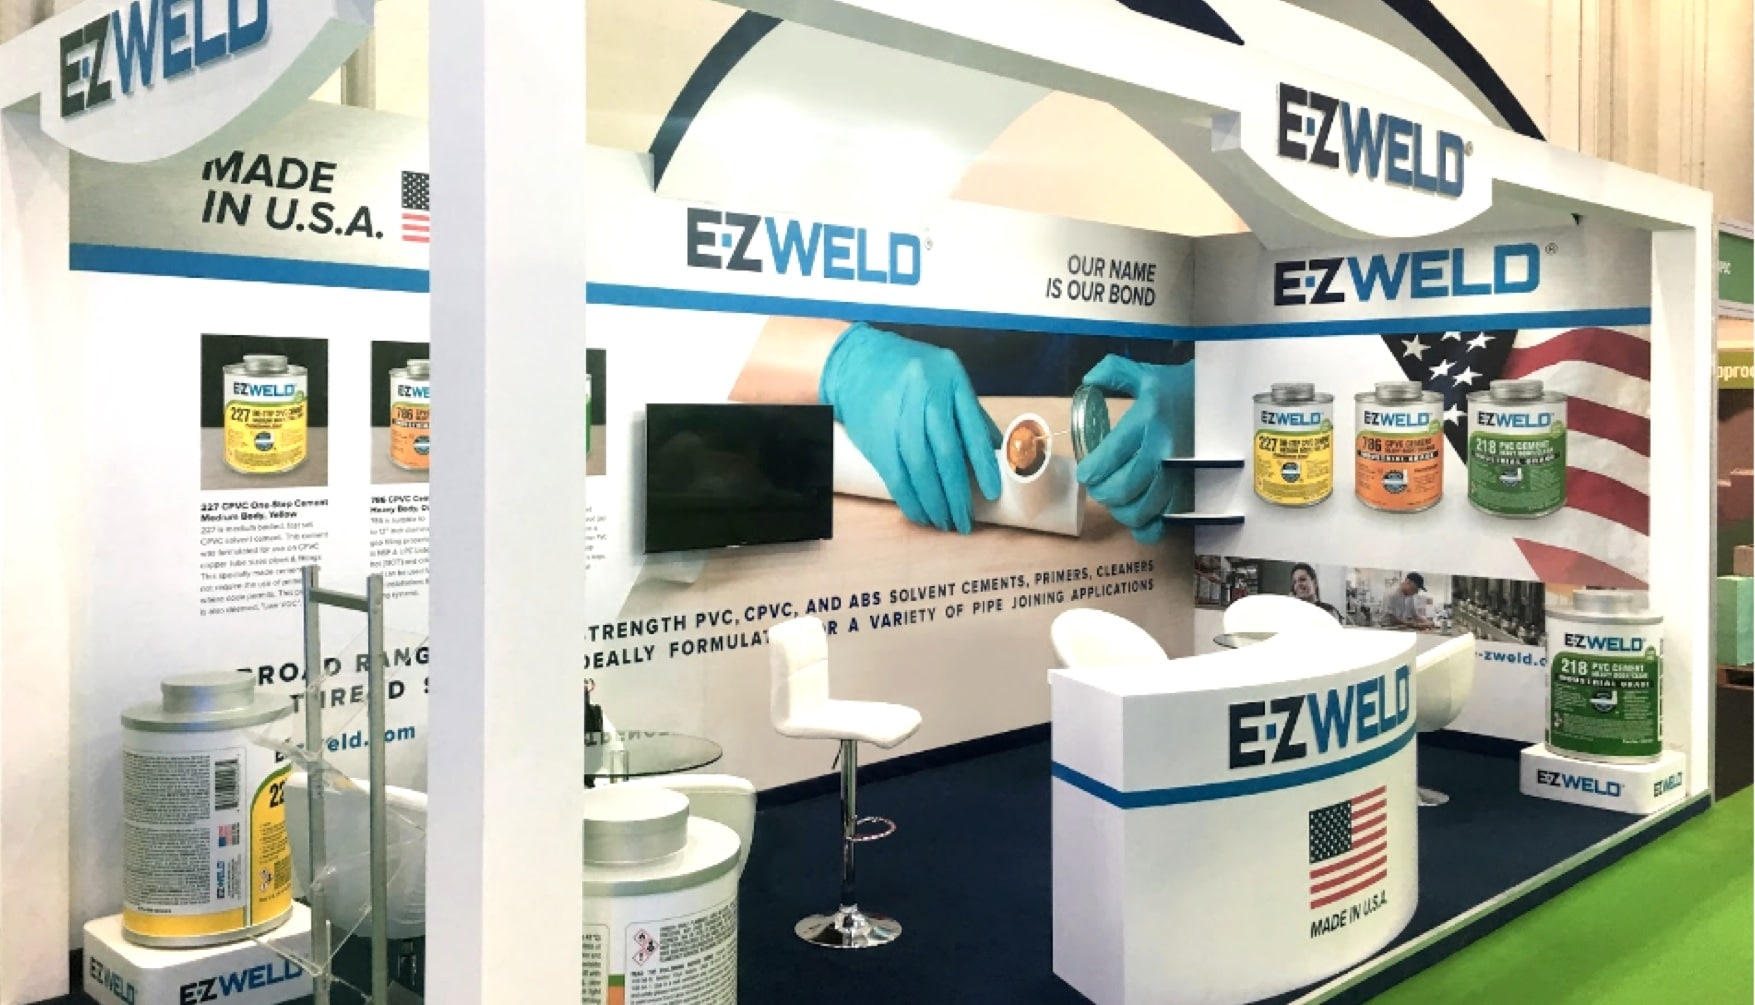 ezweld-featured-thumb-1